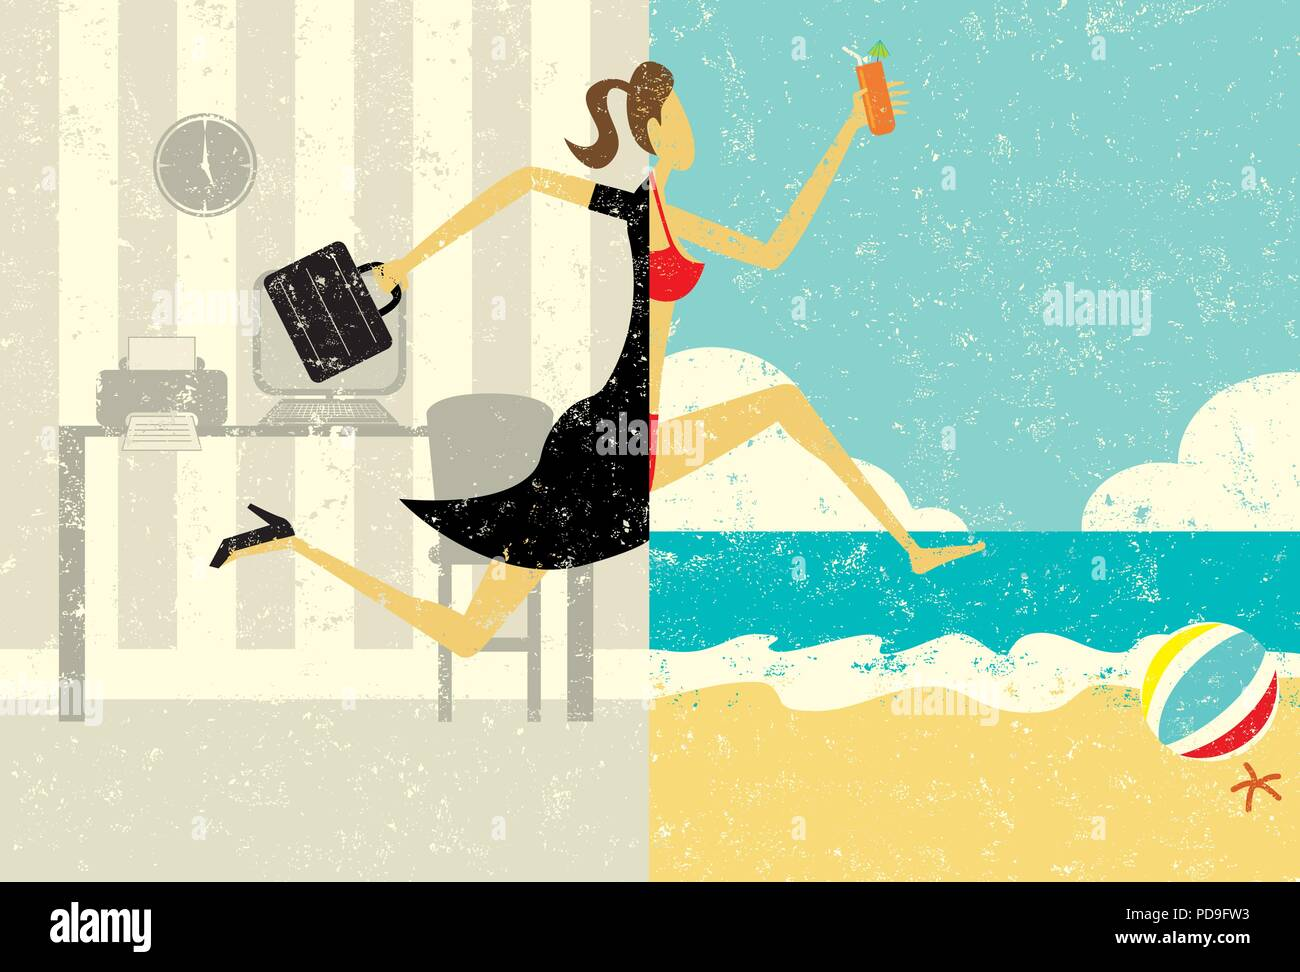 Transition to Vacation. A businesswoman with a briefcase making a split image transition to wearing a bikini on a beach vacation. - Stock Vector